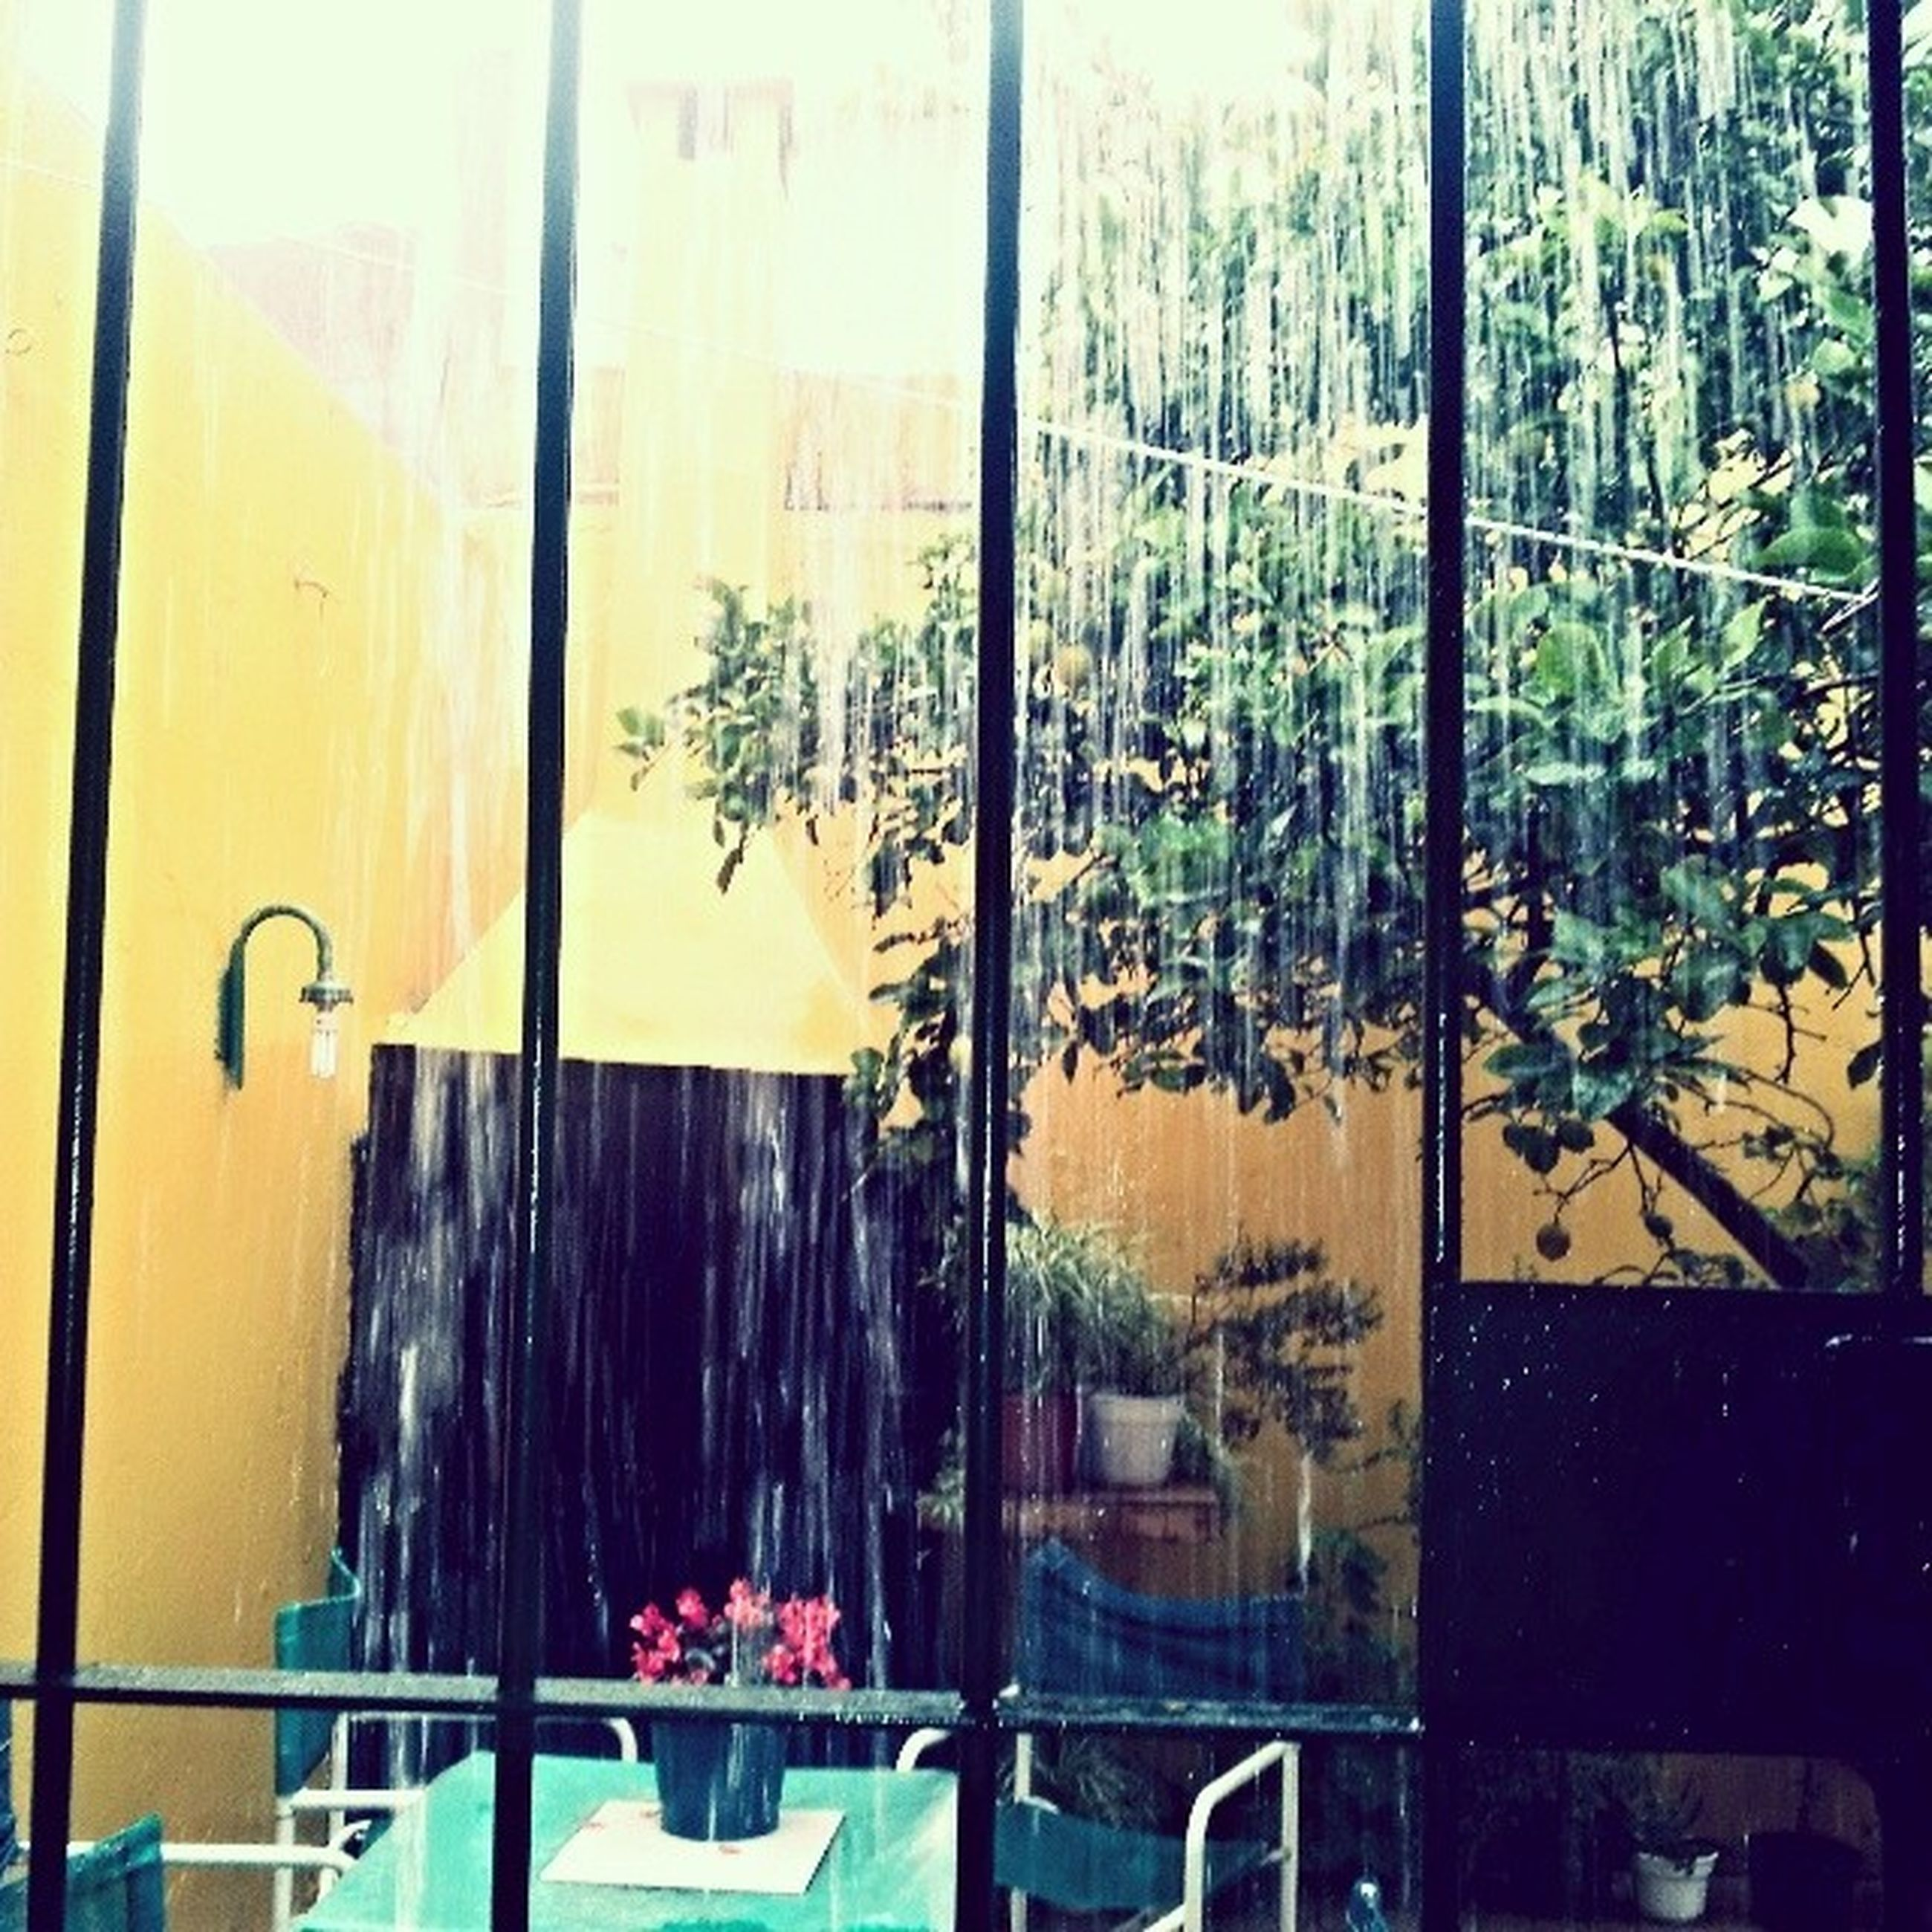 window, glass - material, yellow, built structure, architecture, building exterior, tree, closed, indoors, house, transparent, day, door, wall - building feature, growth, curtain, no people, plant, hanging, wall